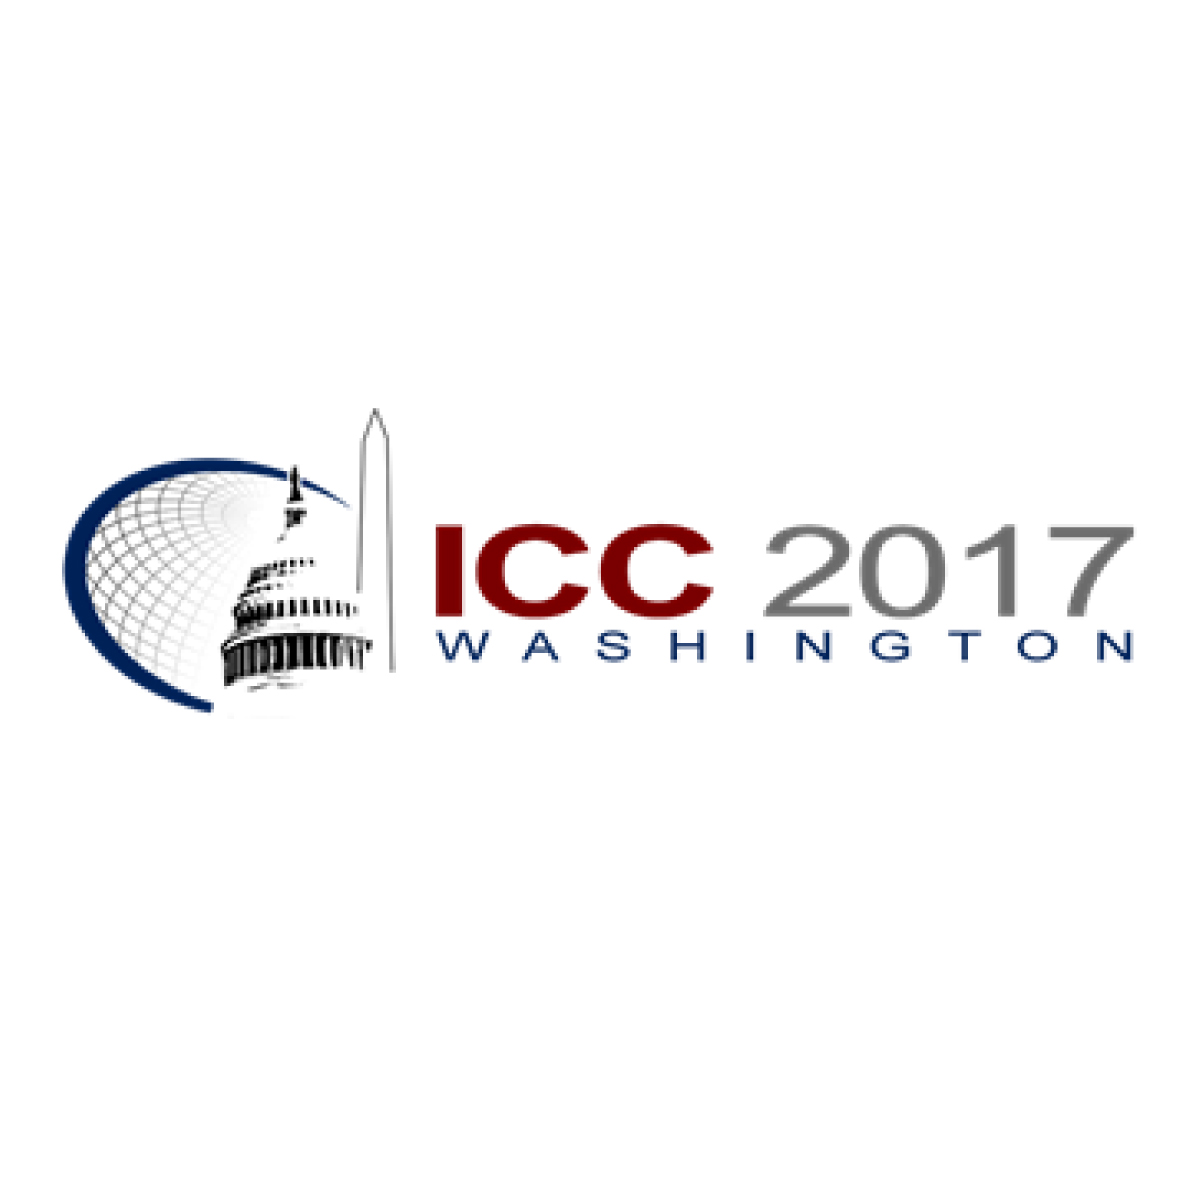 International Cartographic Conference – Call for Abstracts